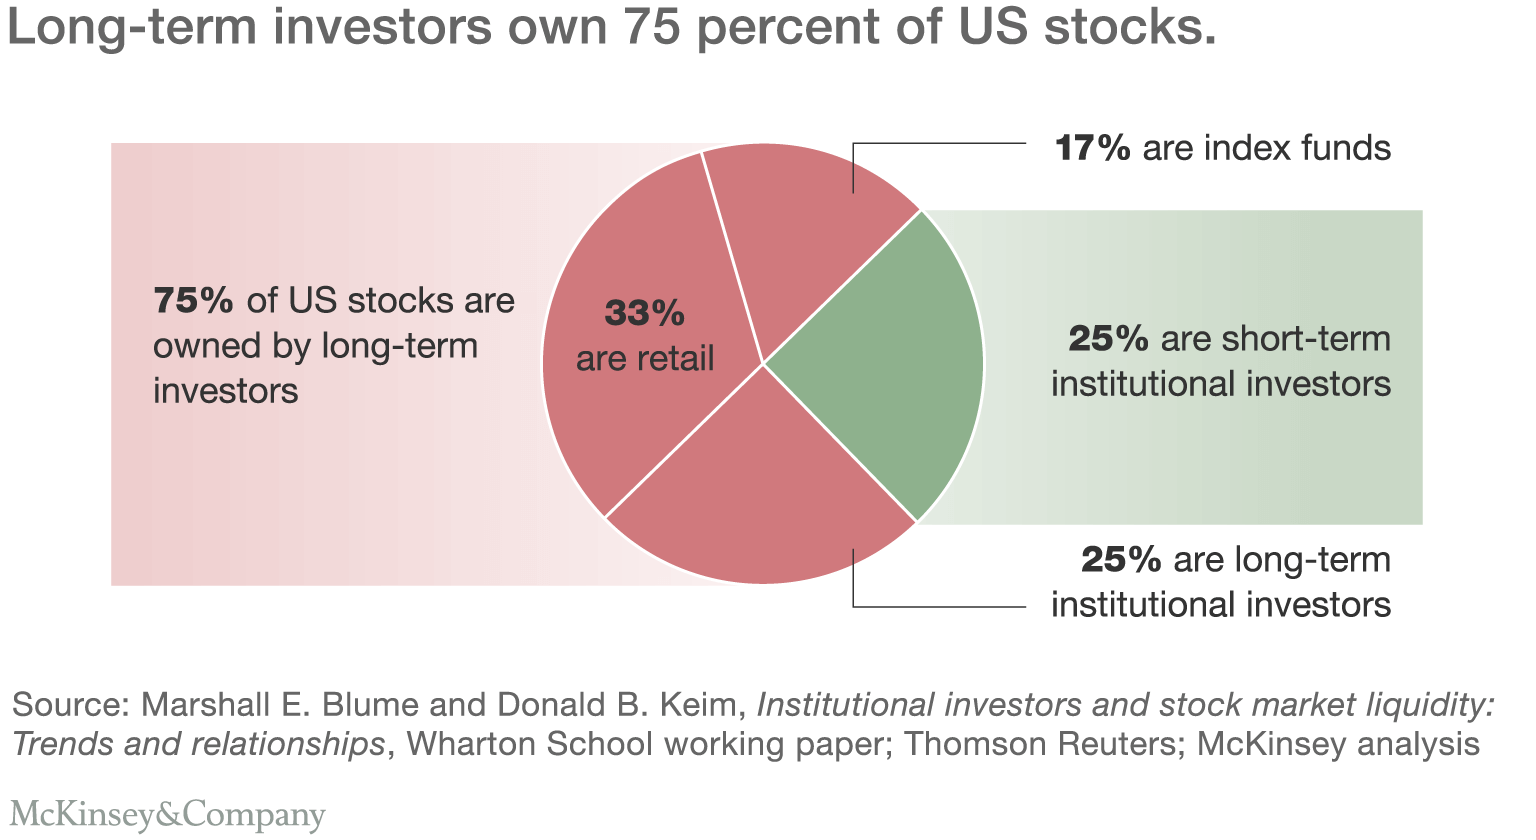 how to build an alliance against corporate short termism long term investors own 75% of us stocks